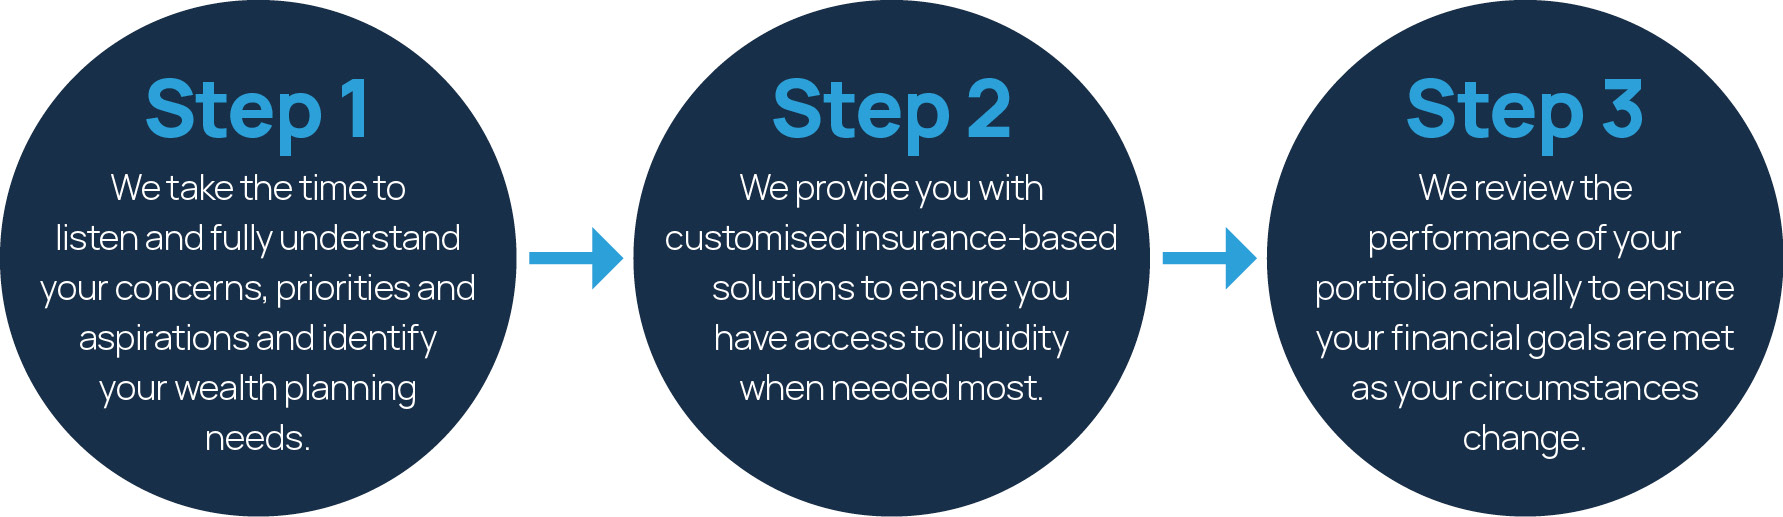 How we work with you: a three step process. We listen to your needs, provide you with customised insurance based solutions, and review performance annually